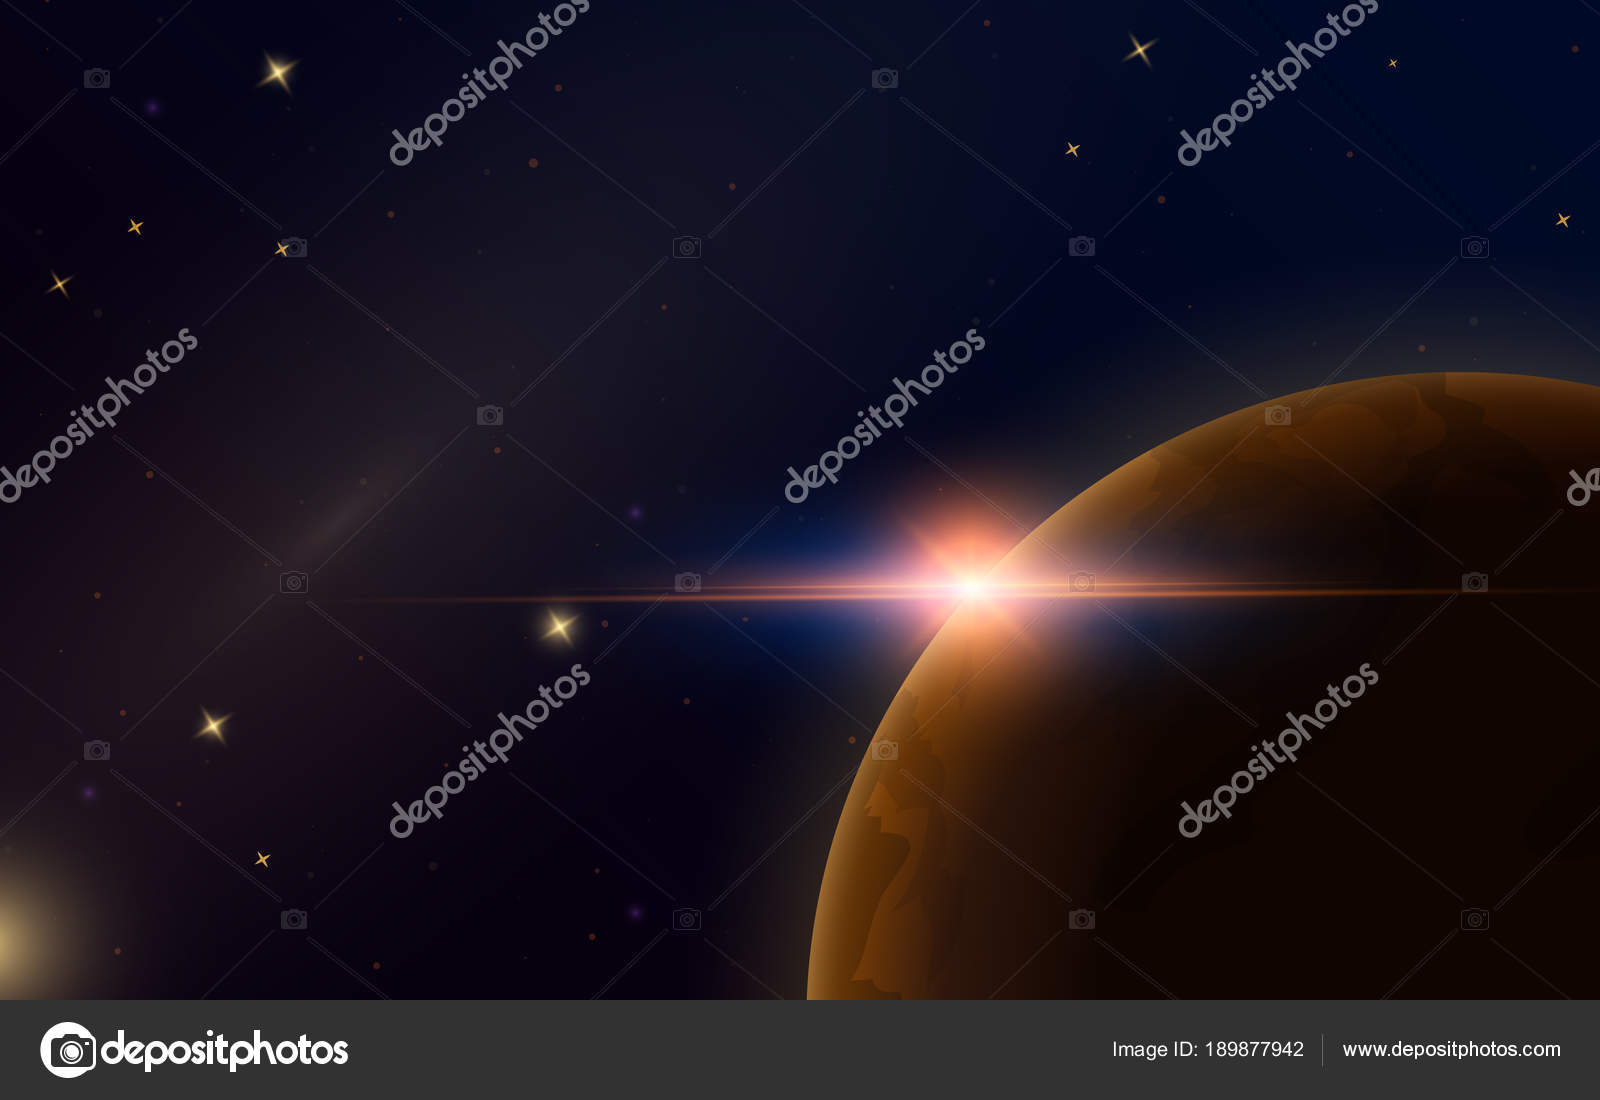 Sunrise In Space Red Planet Mars Astronomical Galaxy Background Light In The Night Sky Solar System For The Banner Modern Design Of The Universe For Cards Stock Vector C Arthurbalitskiy 189877942